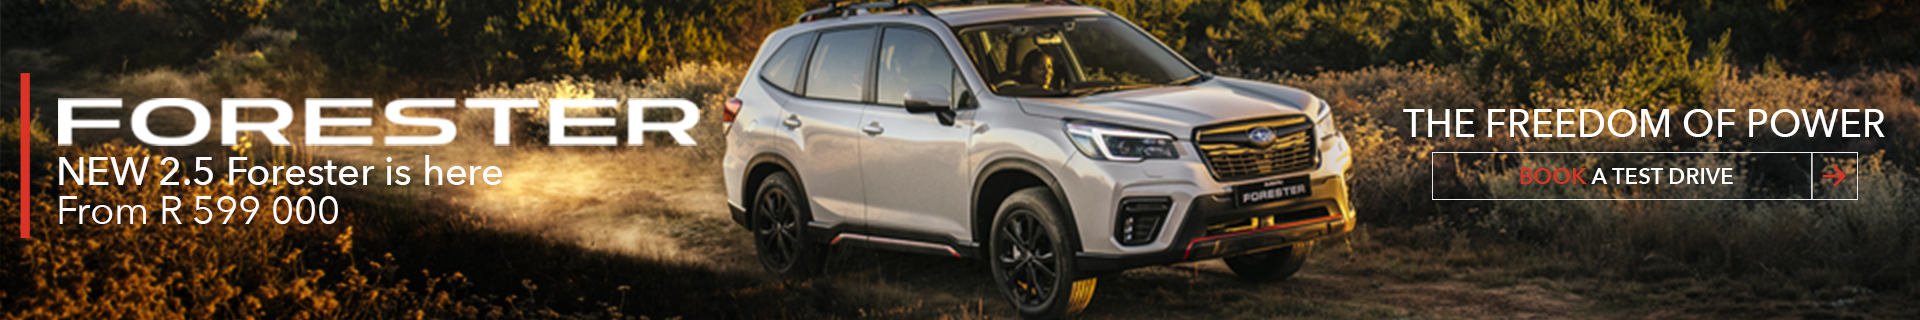 The Freedom of Power. In the New Forester Sport 2.5i.